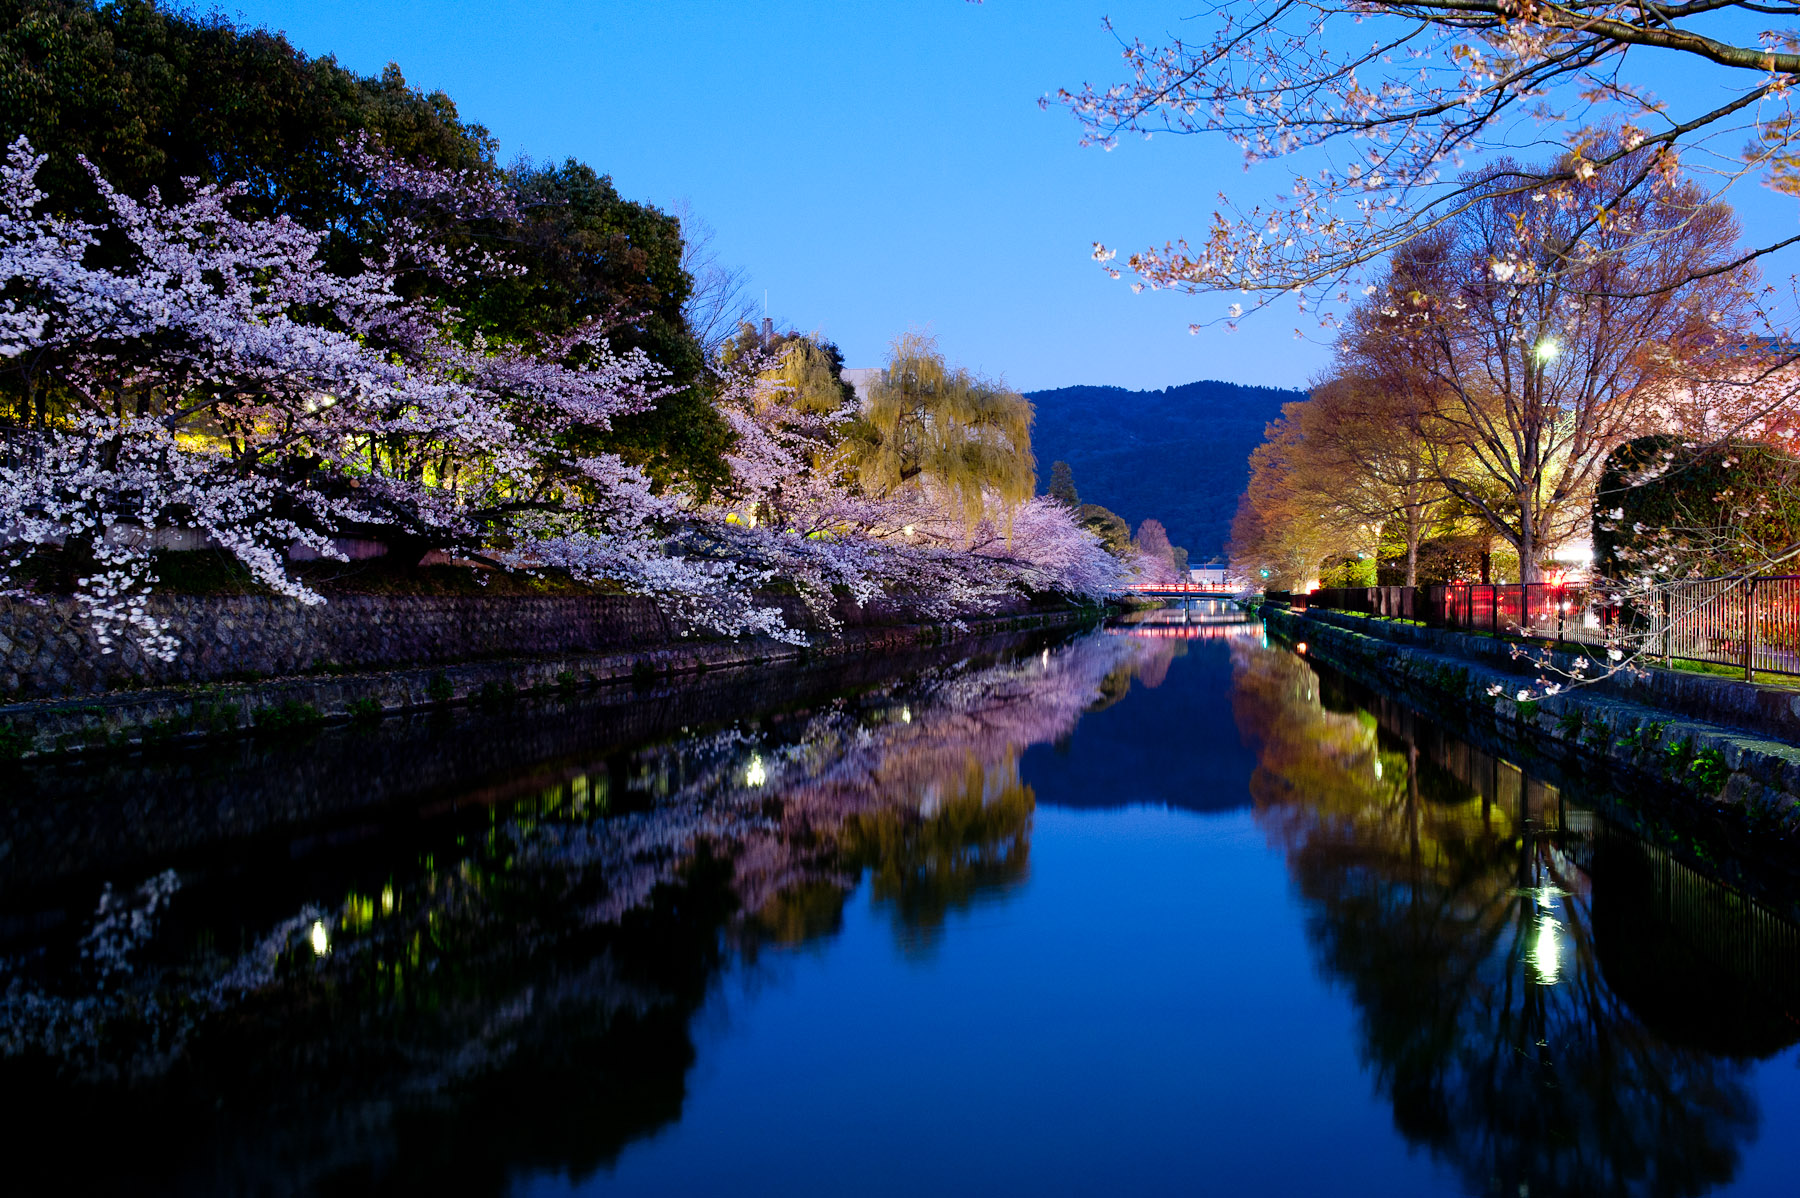 Jeffrey Friedl's Blog » The Hope of Cherry Blossoms in Japan